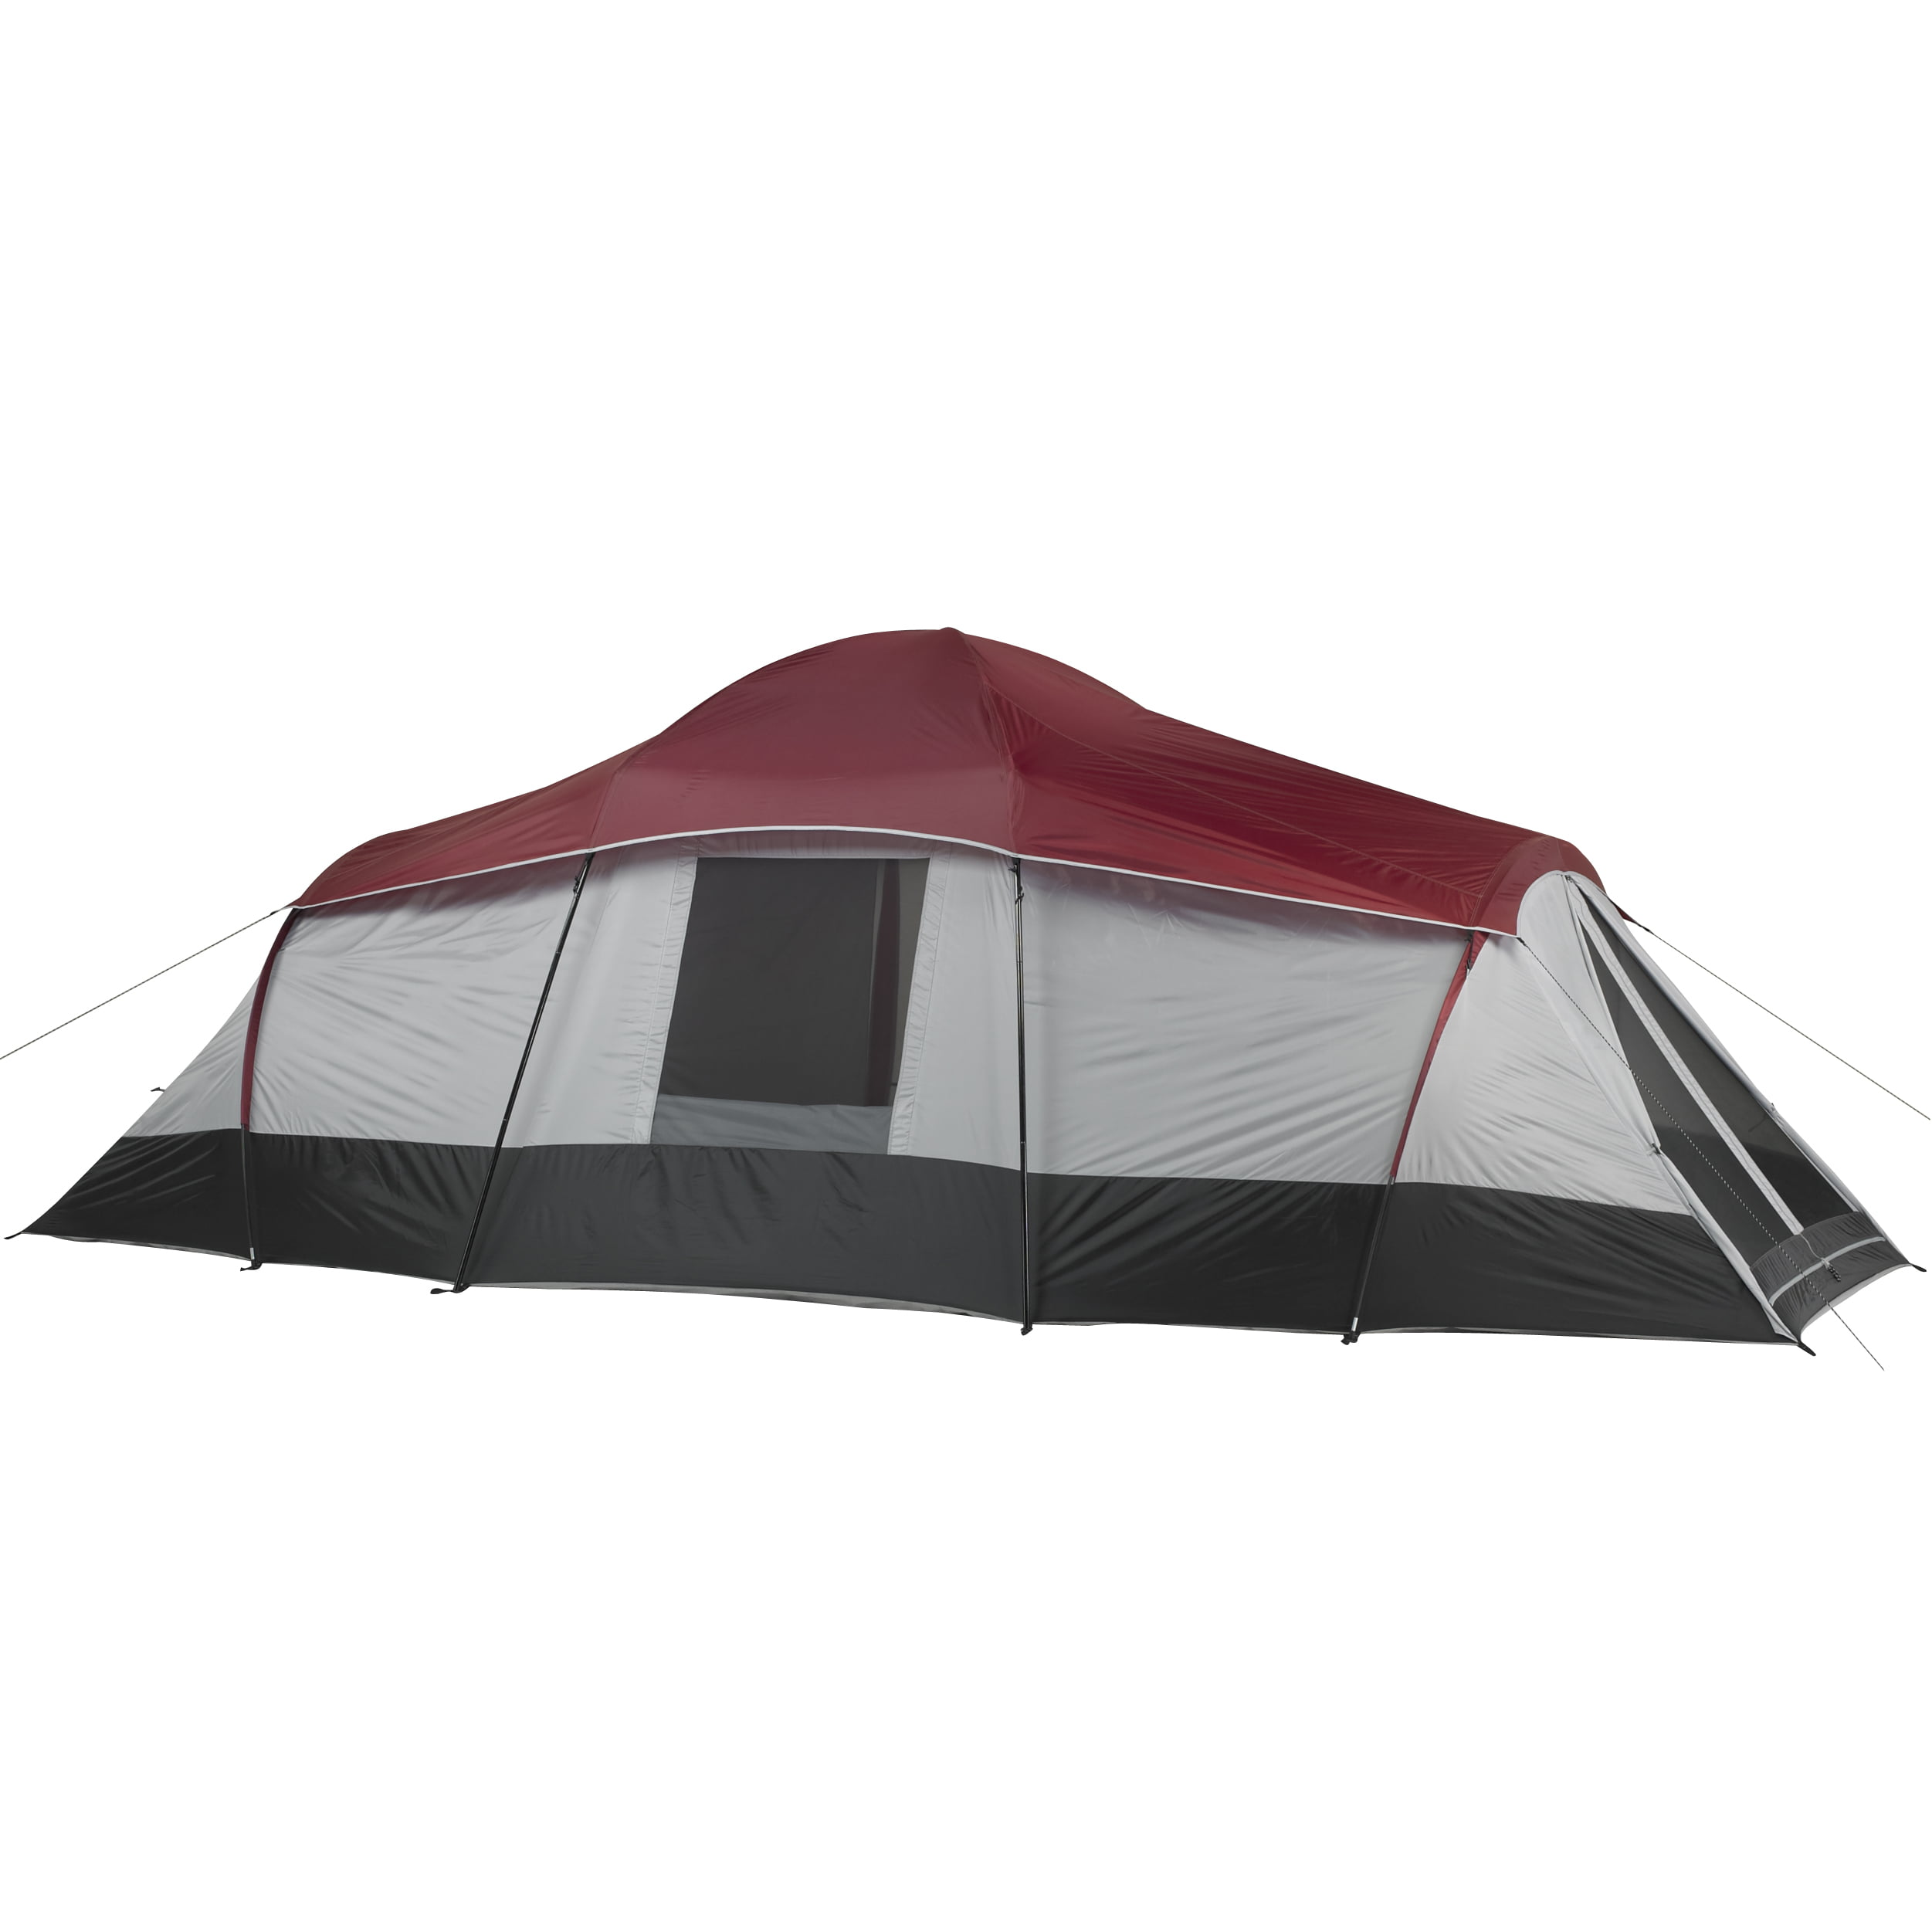 13b53b3e32 Ozark Trail 10-Person 3-Room Cabin Tent with 2 Side Entrances ...